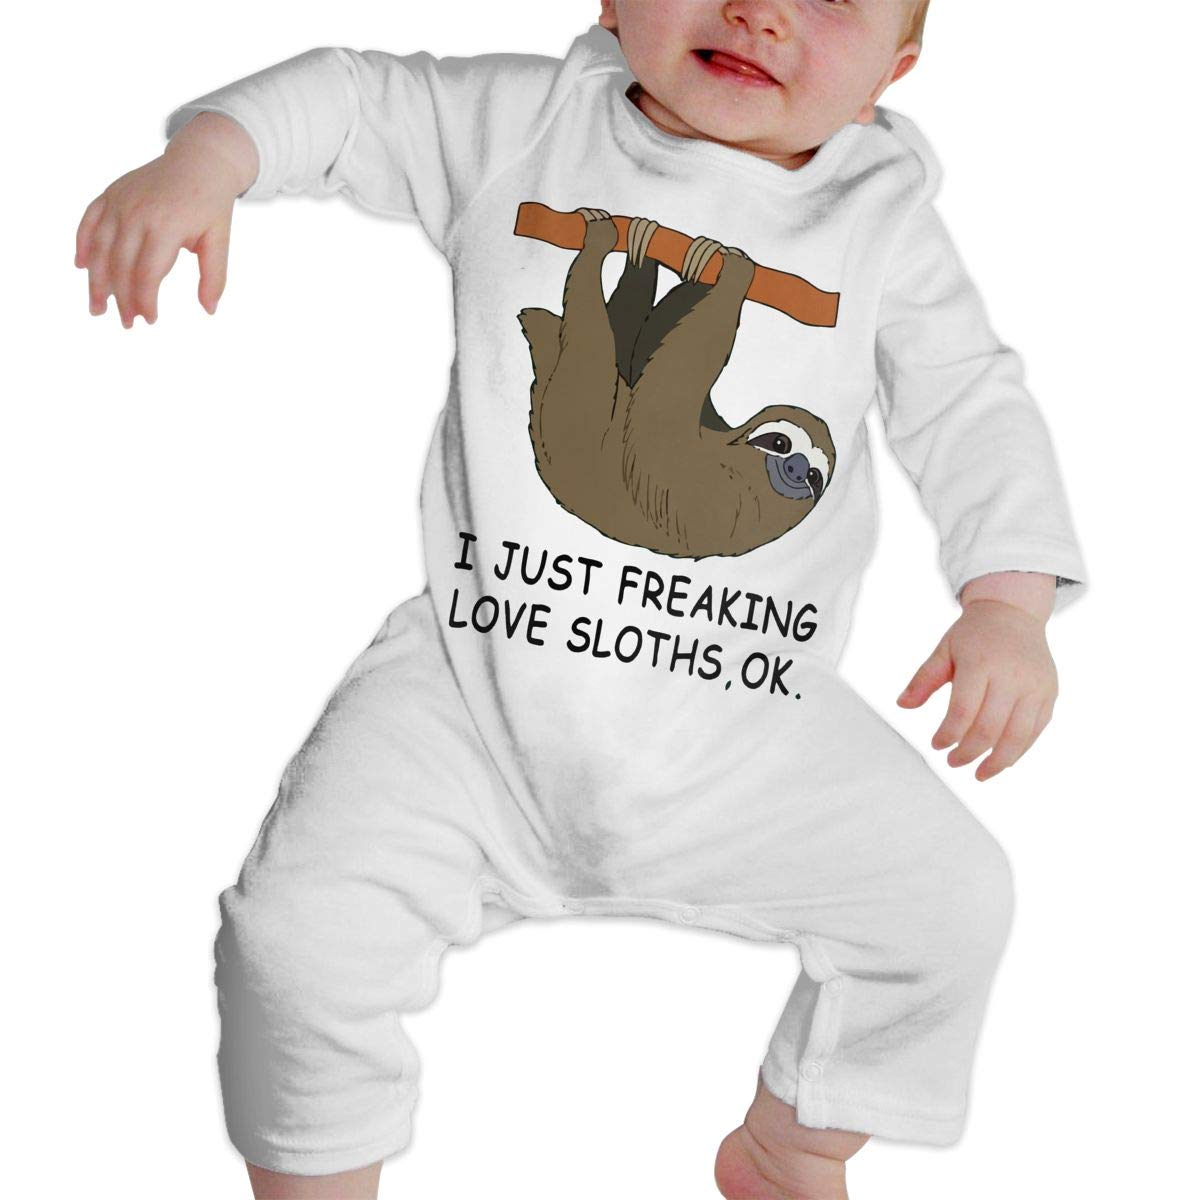 Infant Baby Boys Girls Cotton Long Sleeve I Just Freaking Love Sloths Ok-3 Baby Clothes One-Piece Romper Clothes